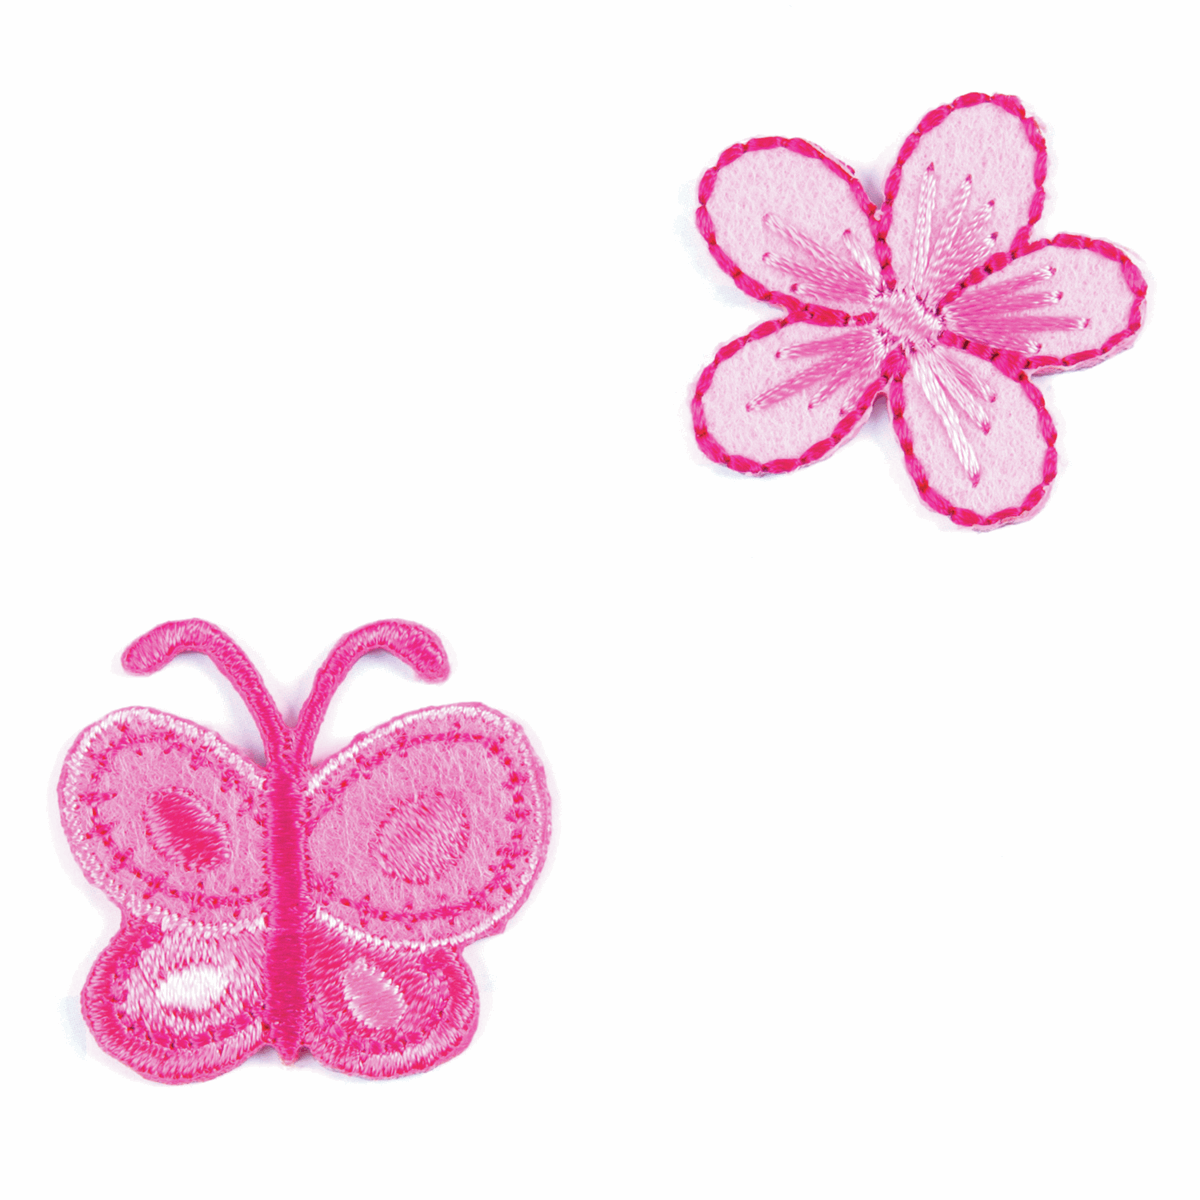 Motif A: Butterfly and Flower